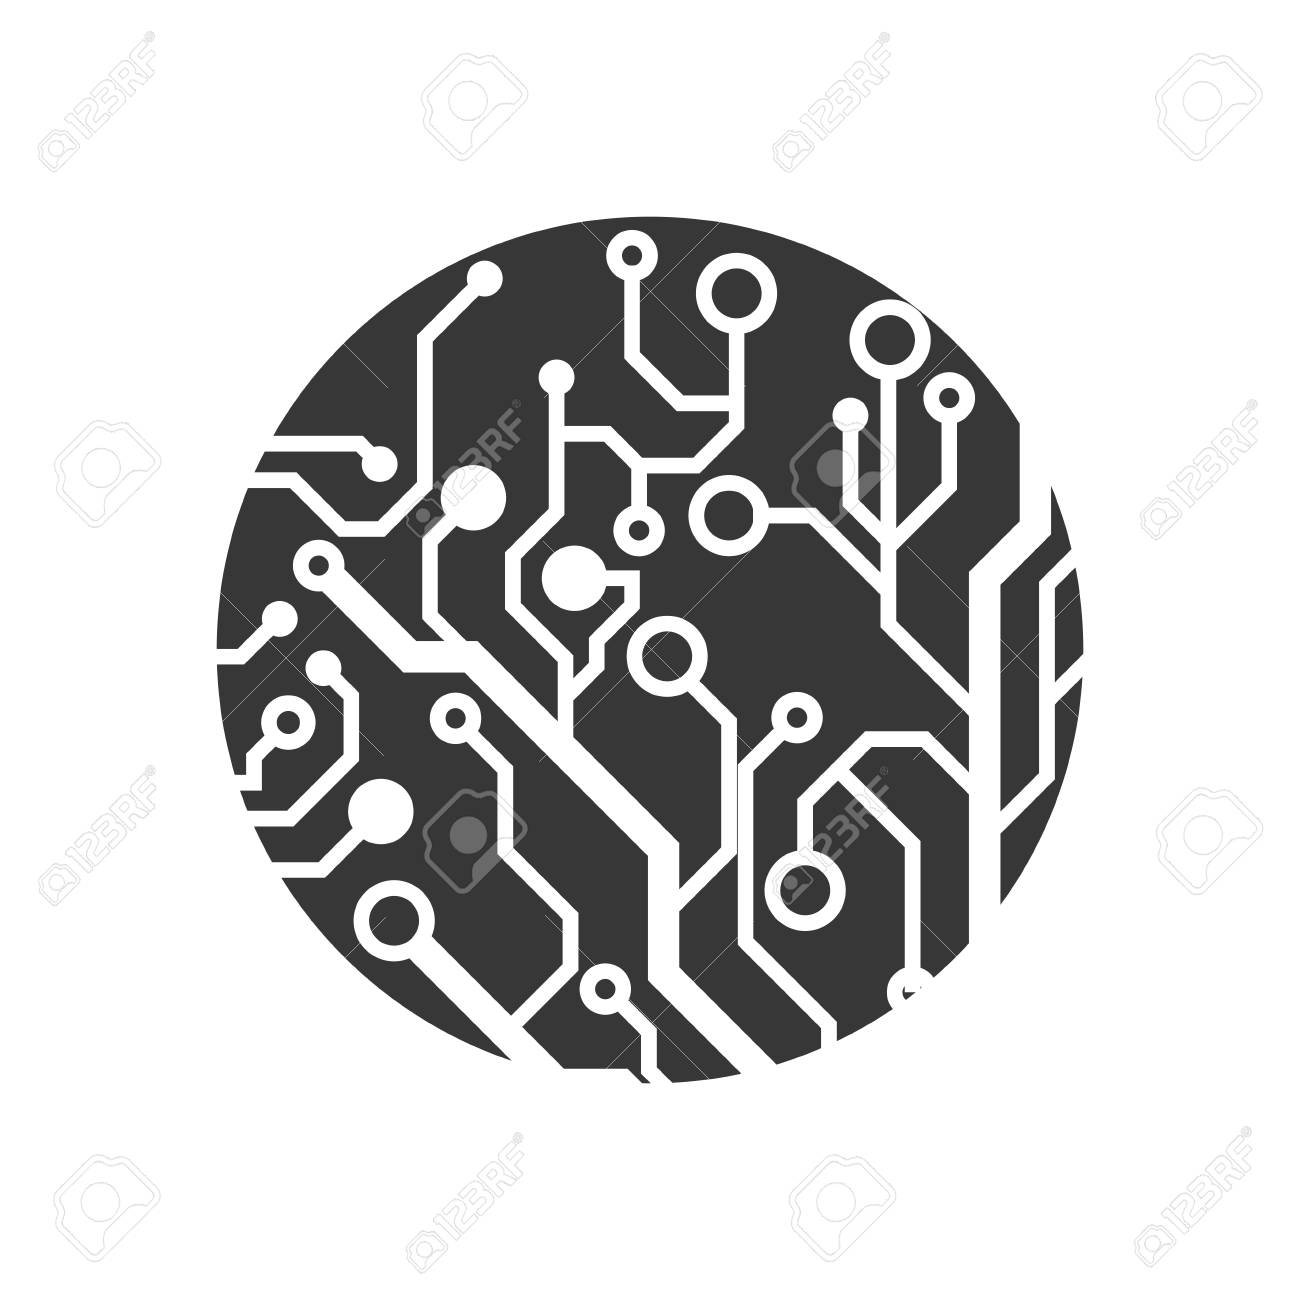 Technology Concept Represented By Circuit Board Circle Icon Wall Clock Isolated And Flat Illustration Stock Vector